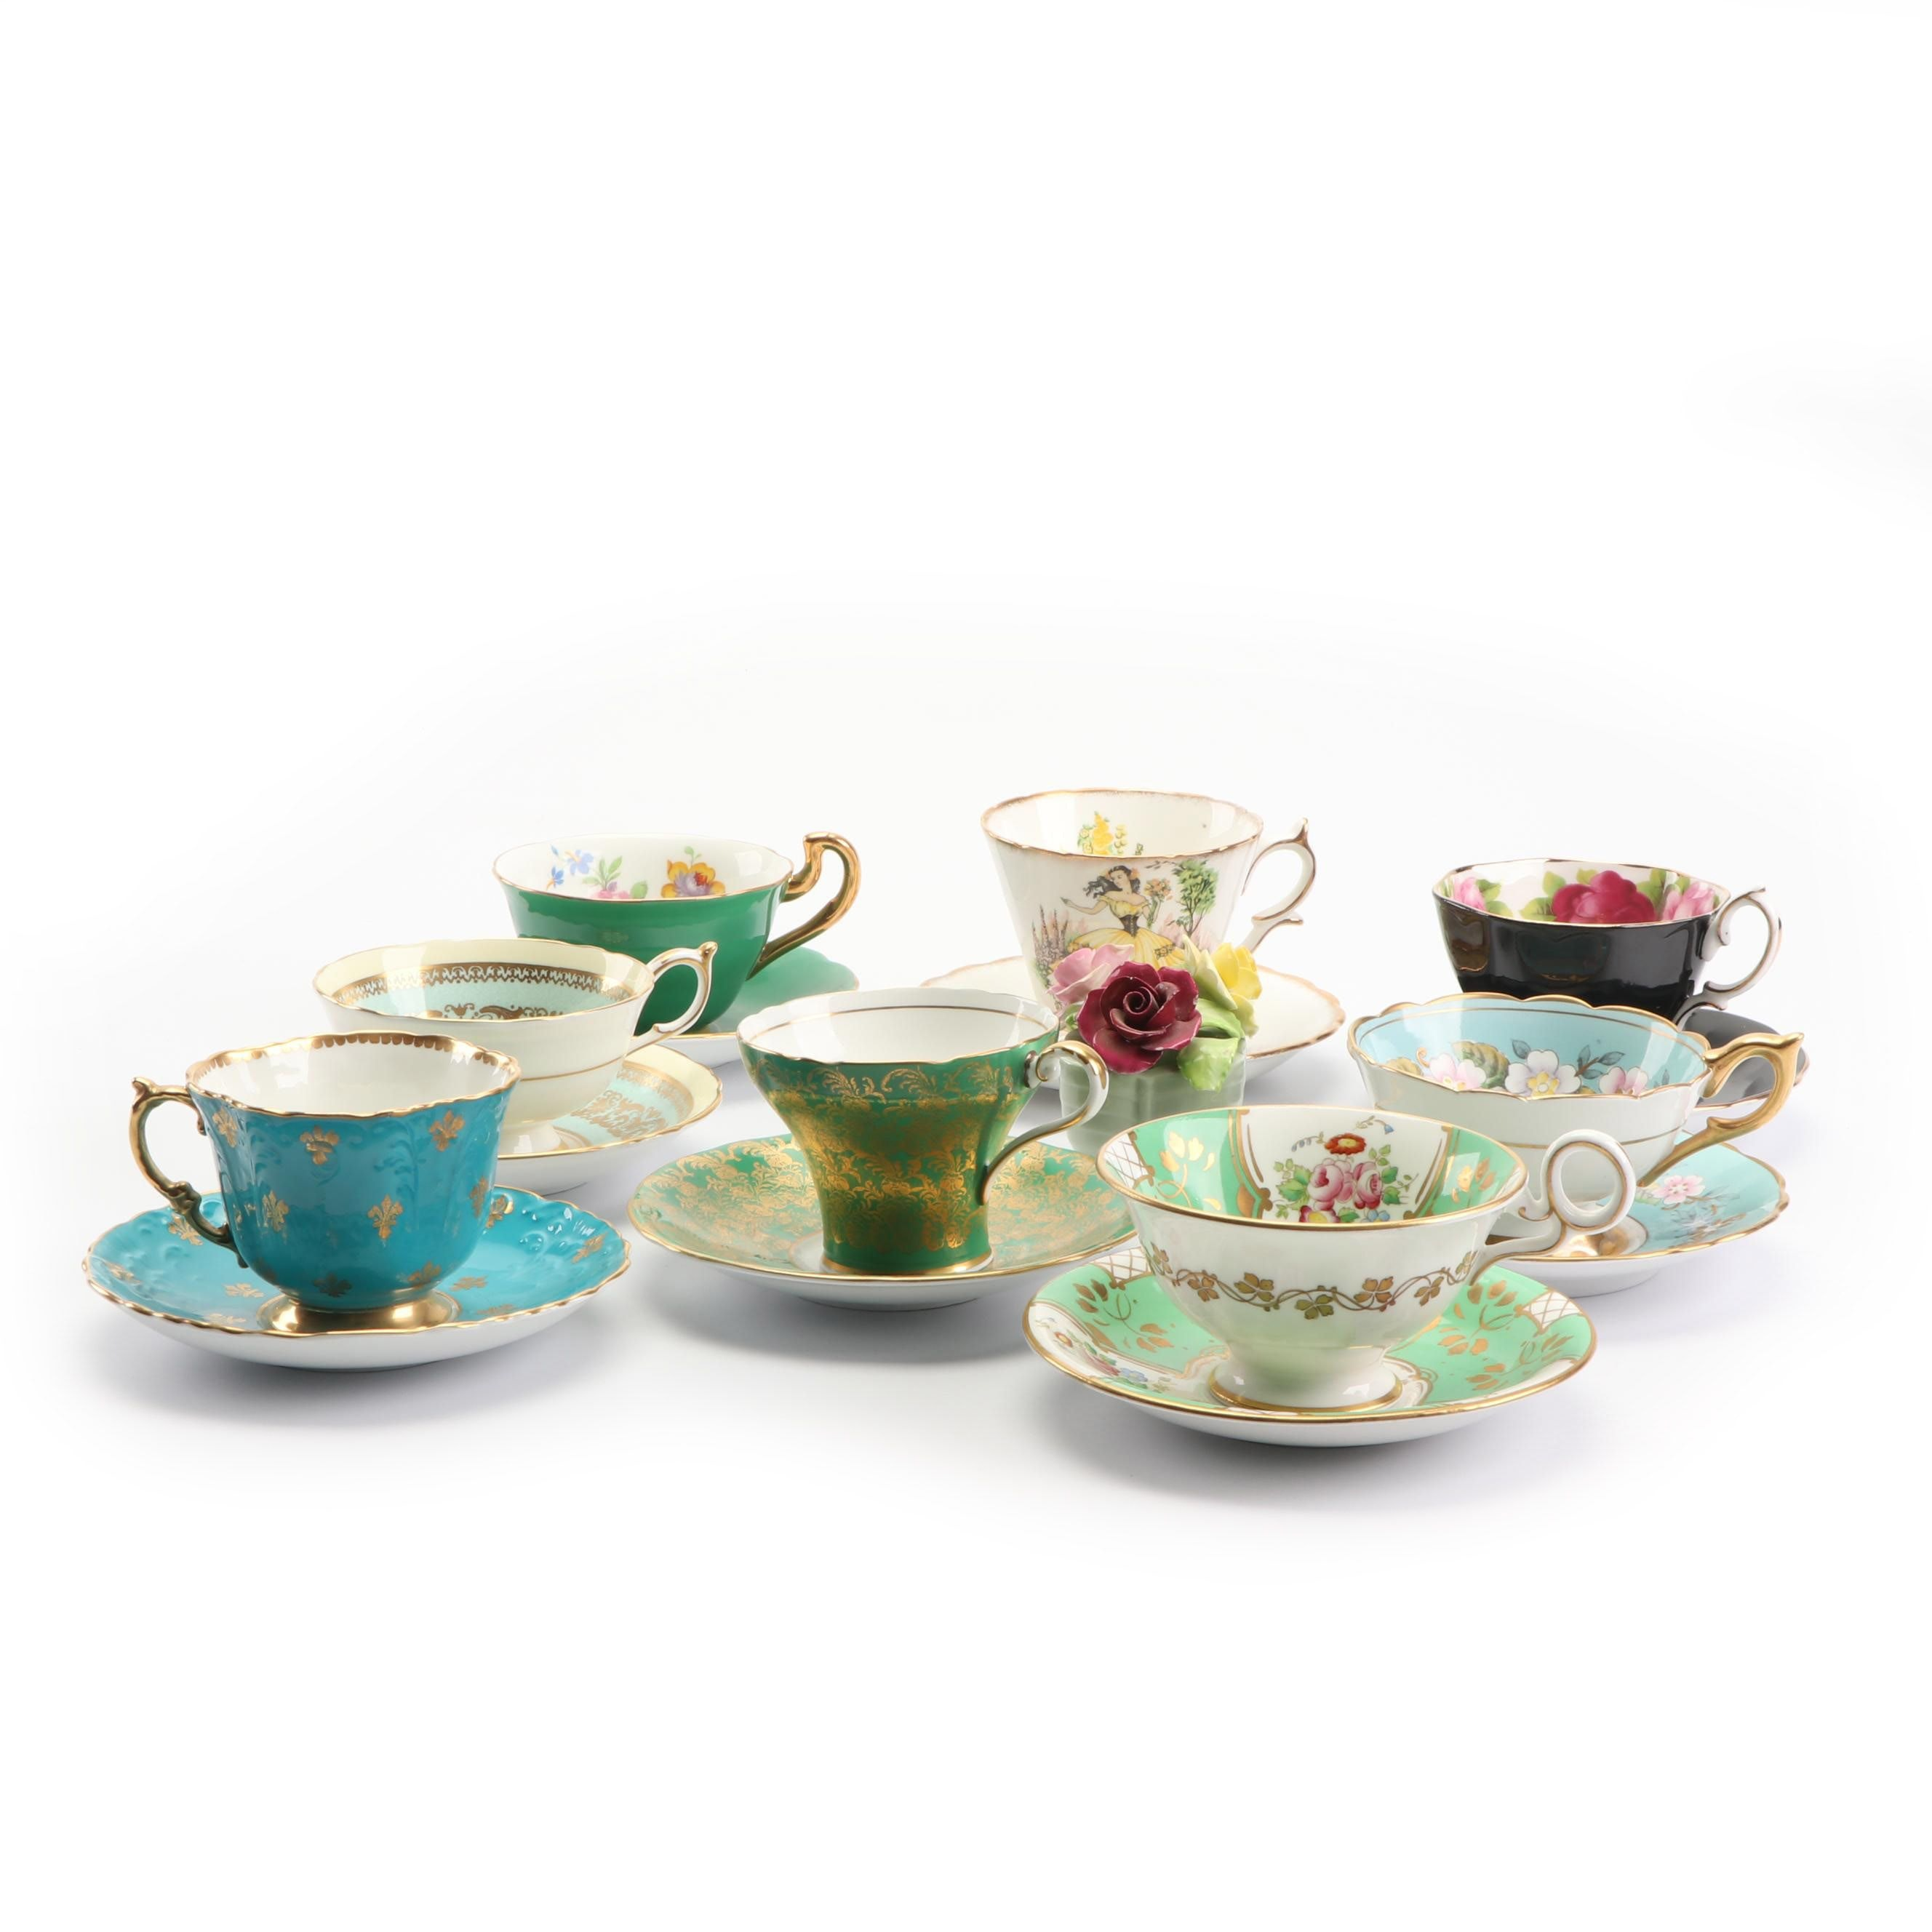 """Vintage English Bone China Cups and Saucers featuring Royal Stafford """"Garland"""""""